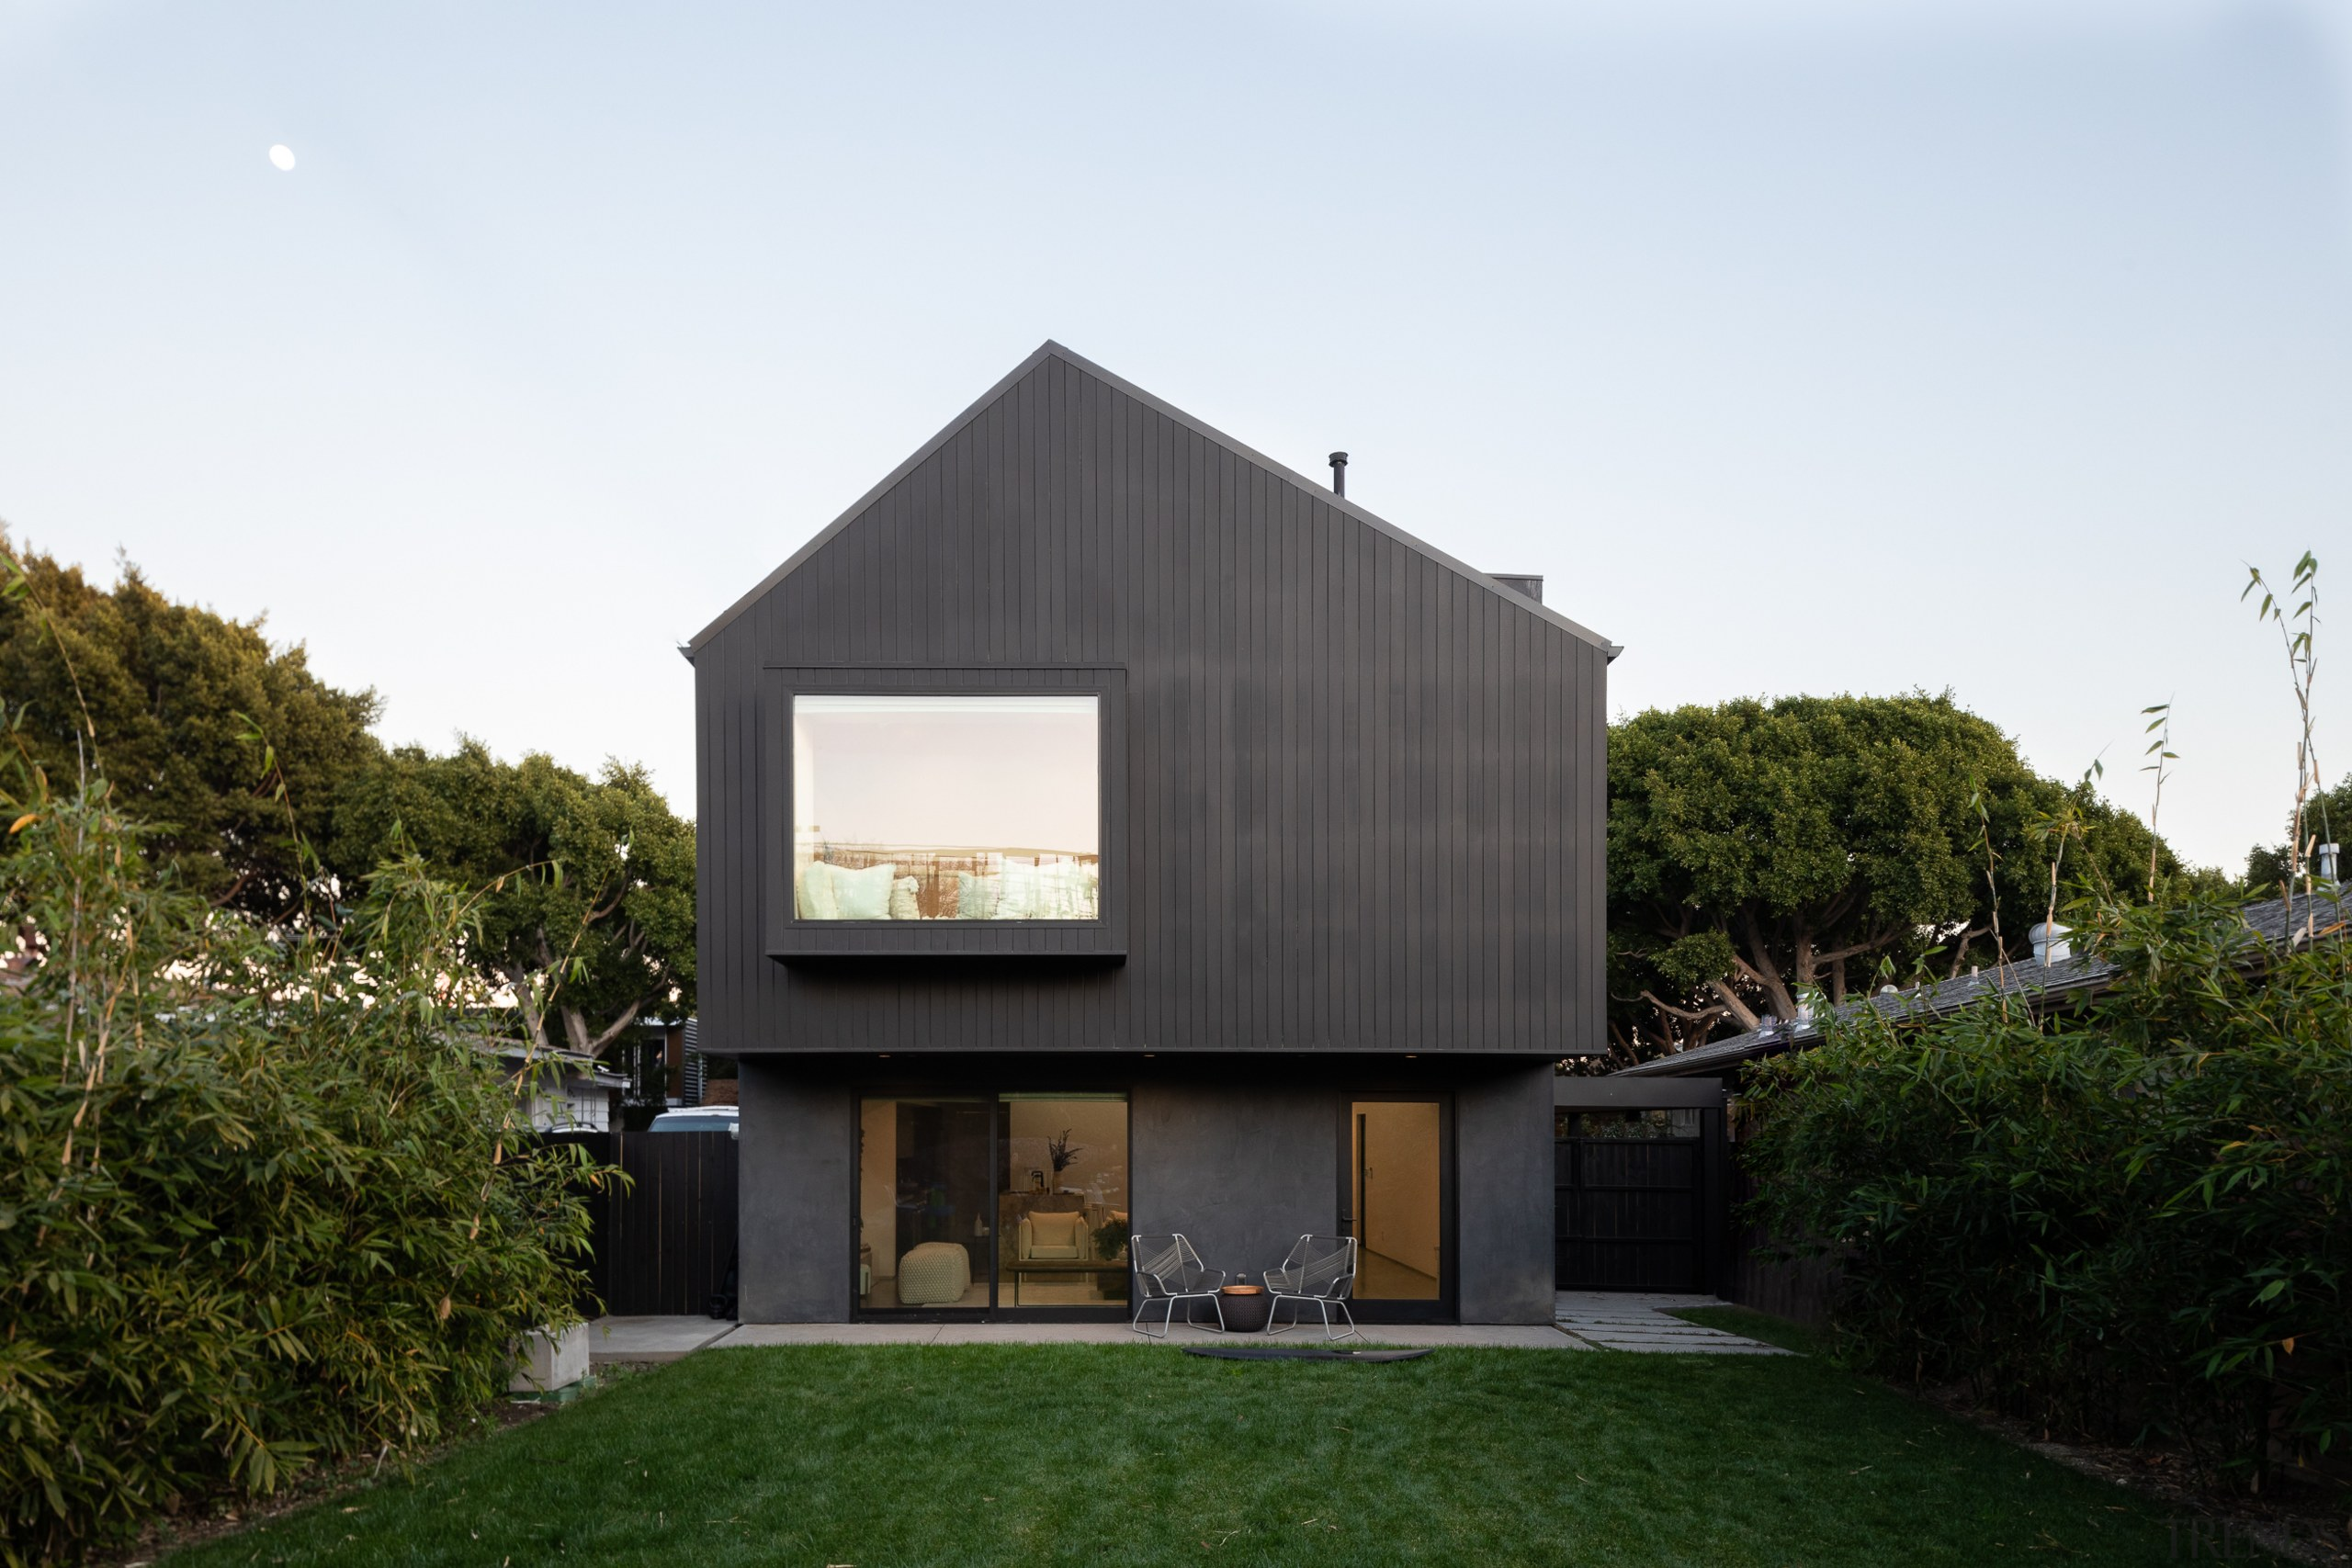 The design intent of this home was to